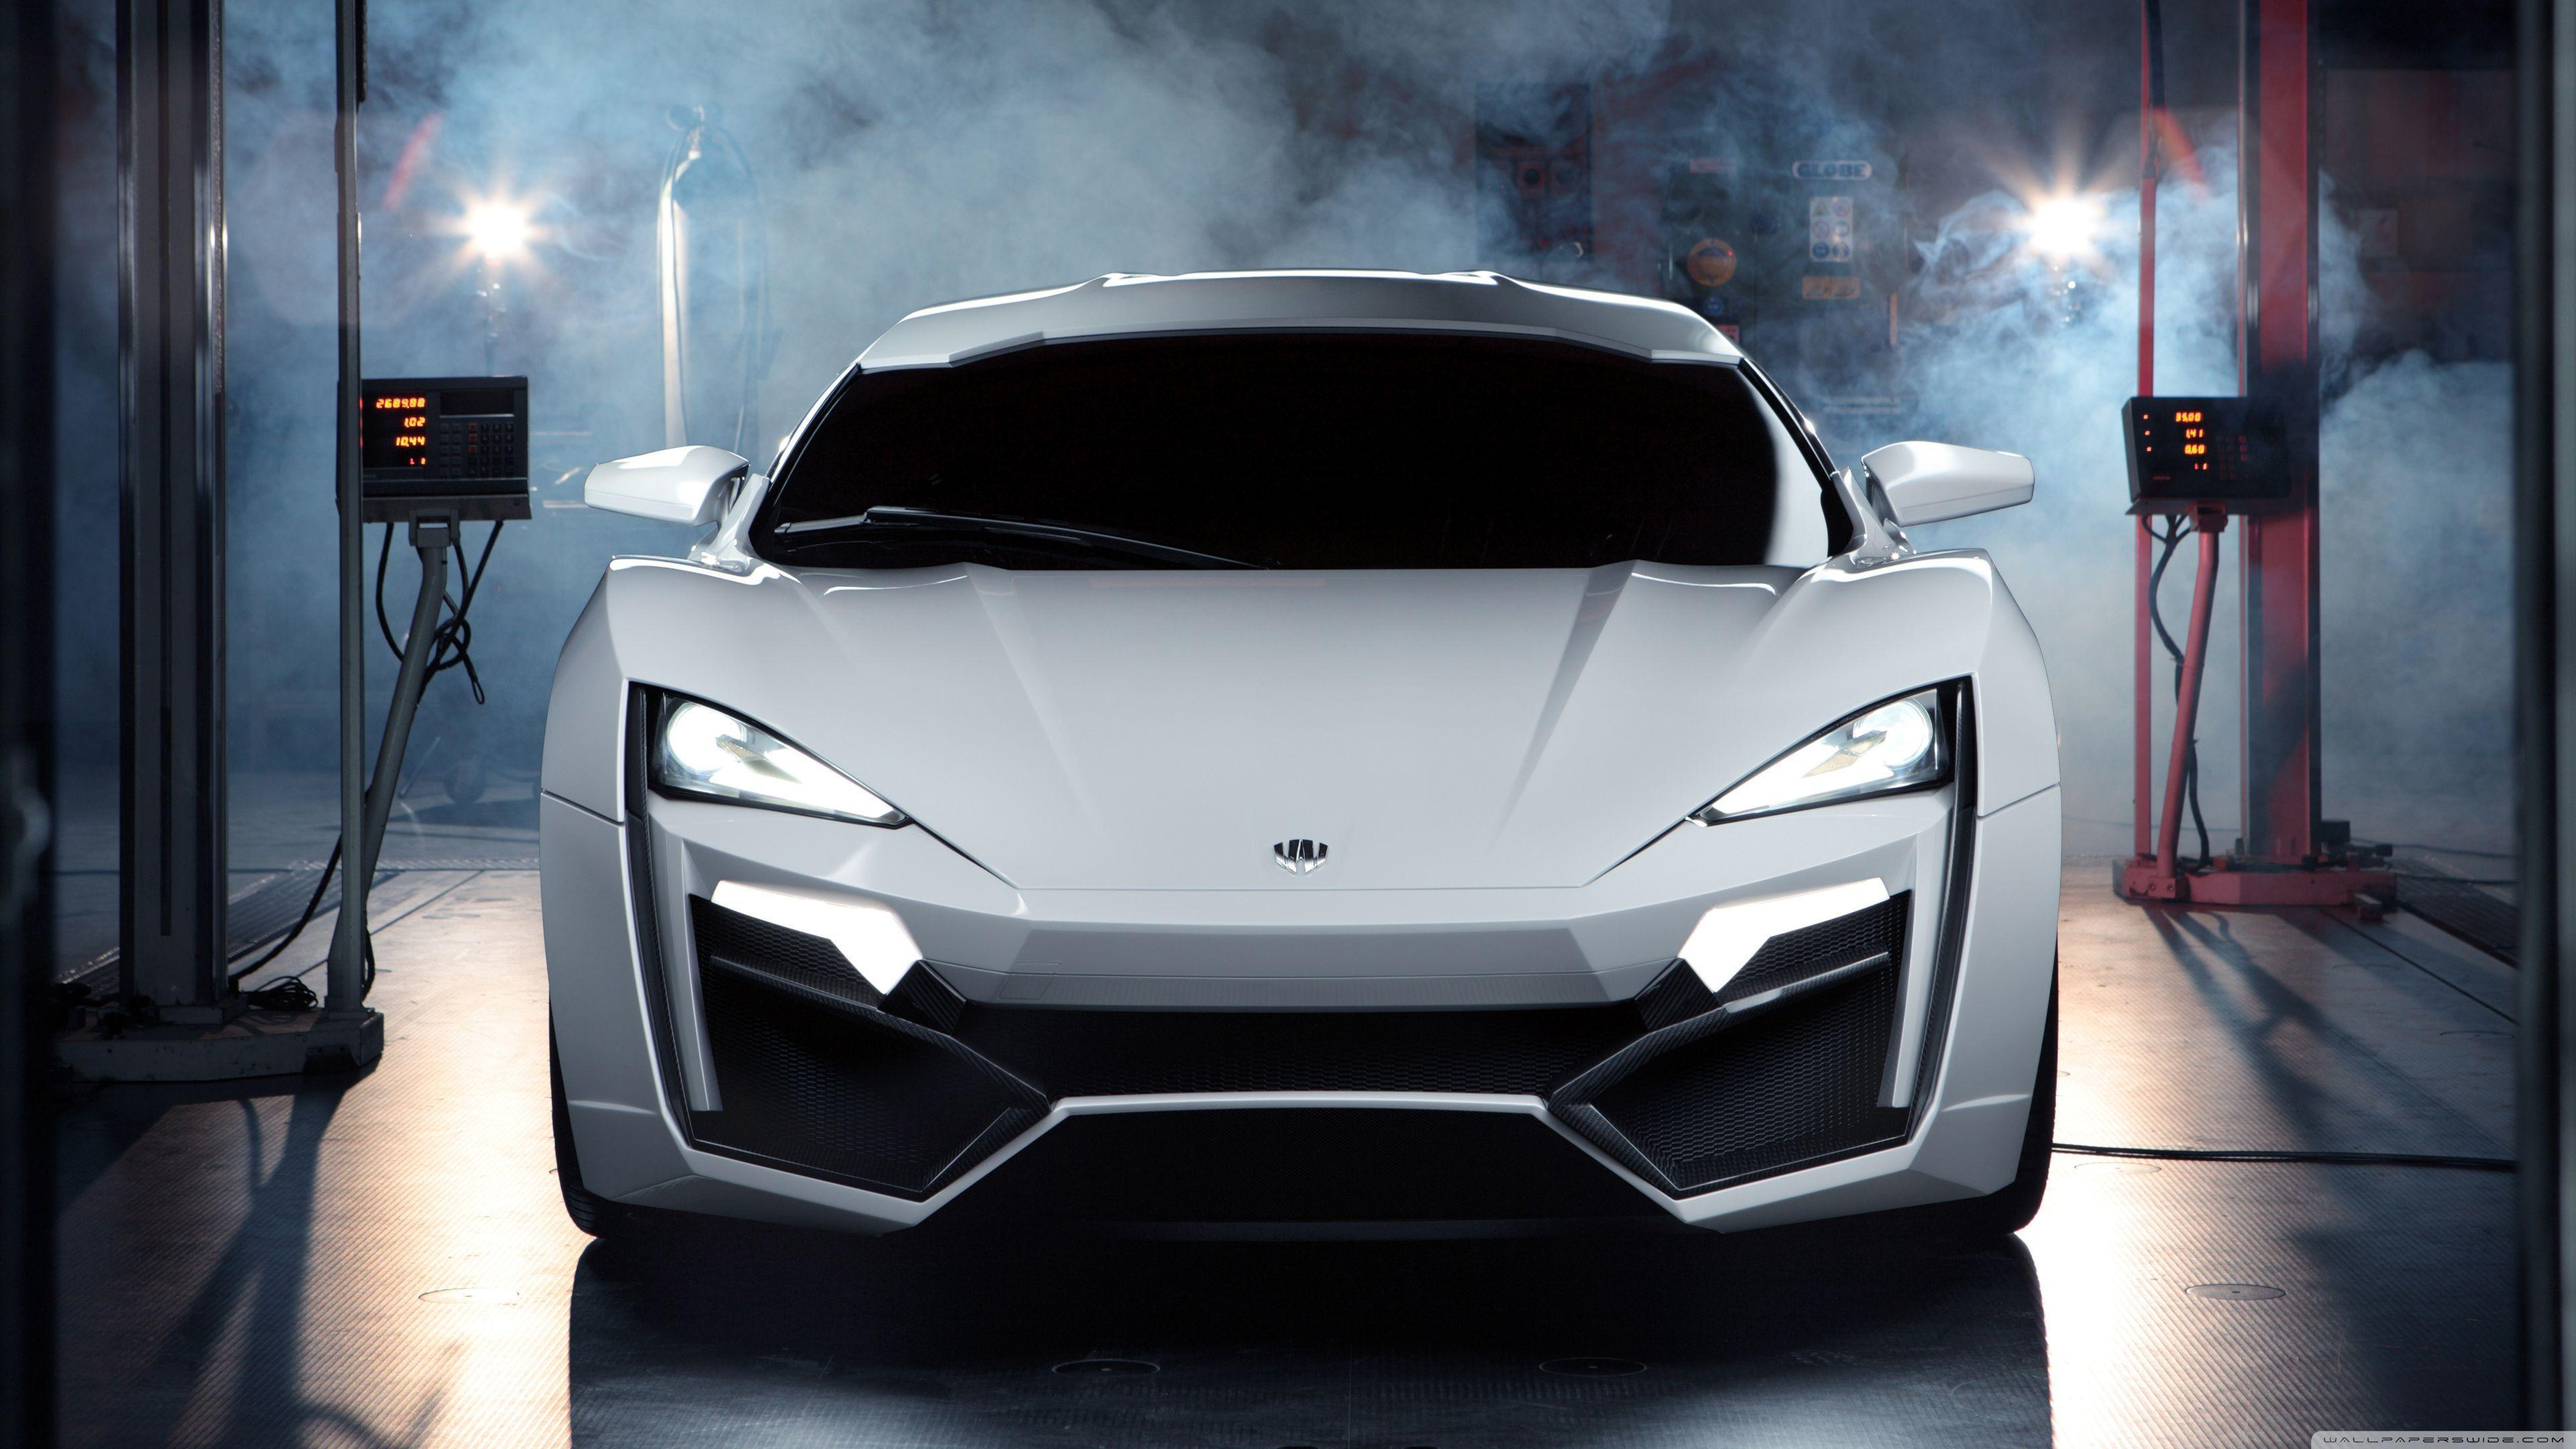 Lykan Hypersport Wallpapers Top Free Lykan Hypersport Backgrounds Wallpaperaccess